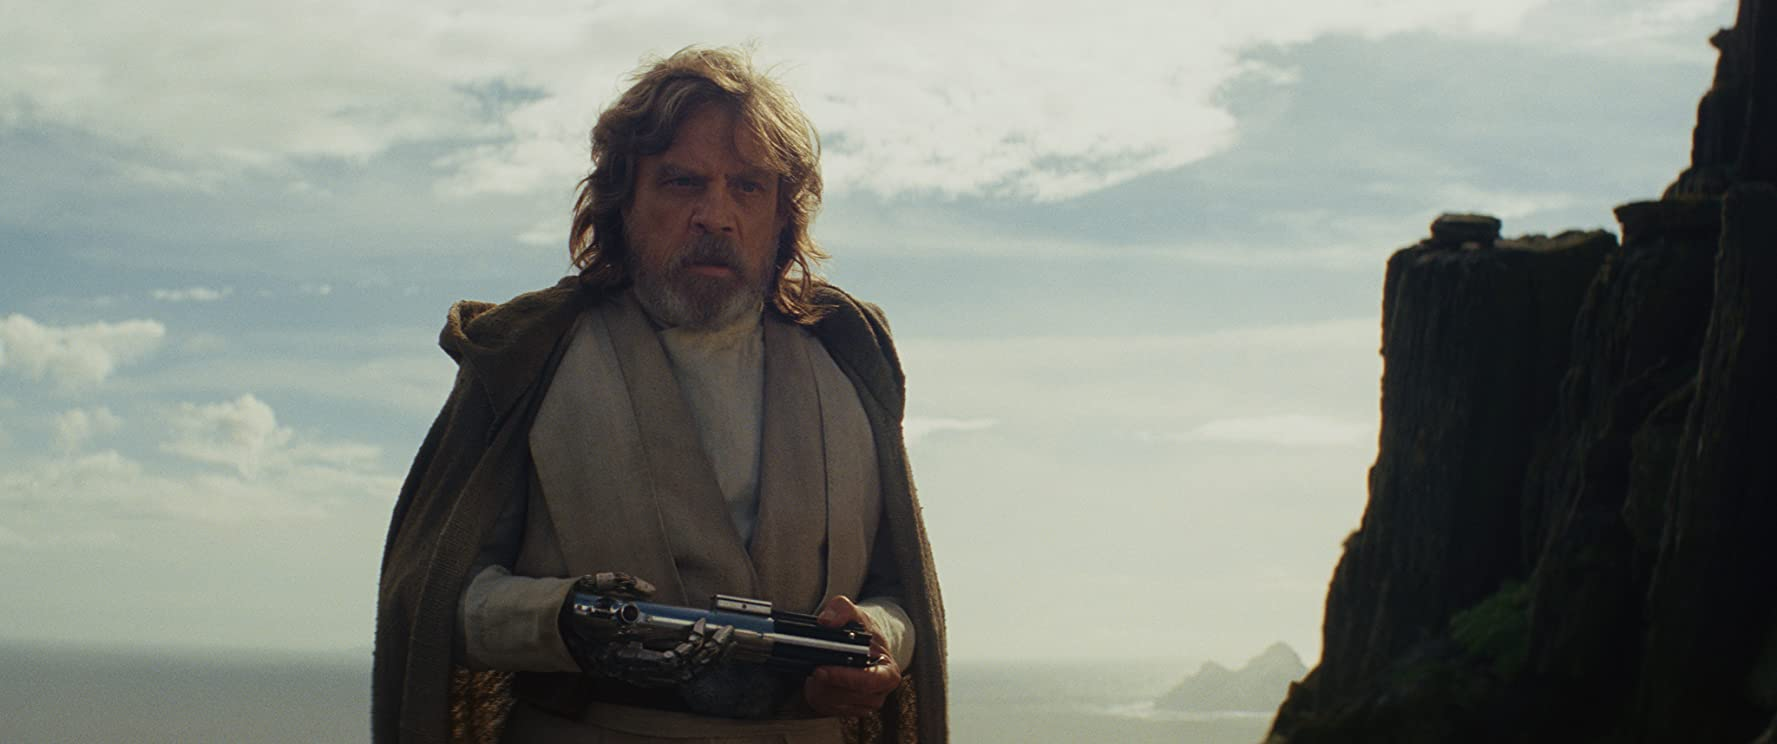 Mark Hamill in Star Wars: Episode VIII - The Last Jedi (2017)